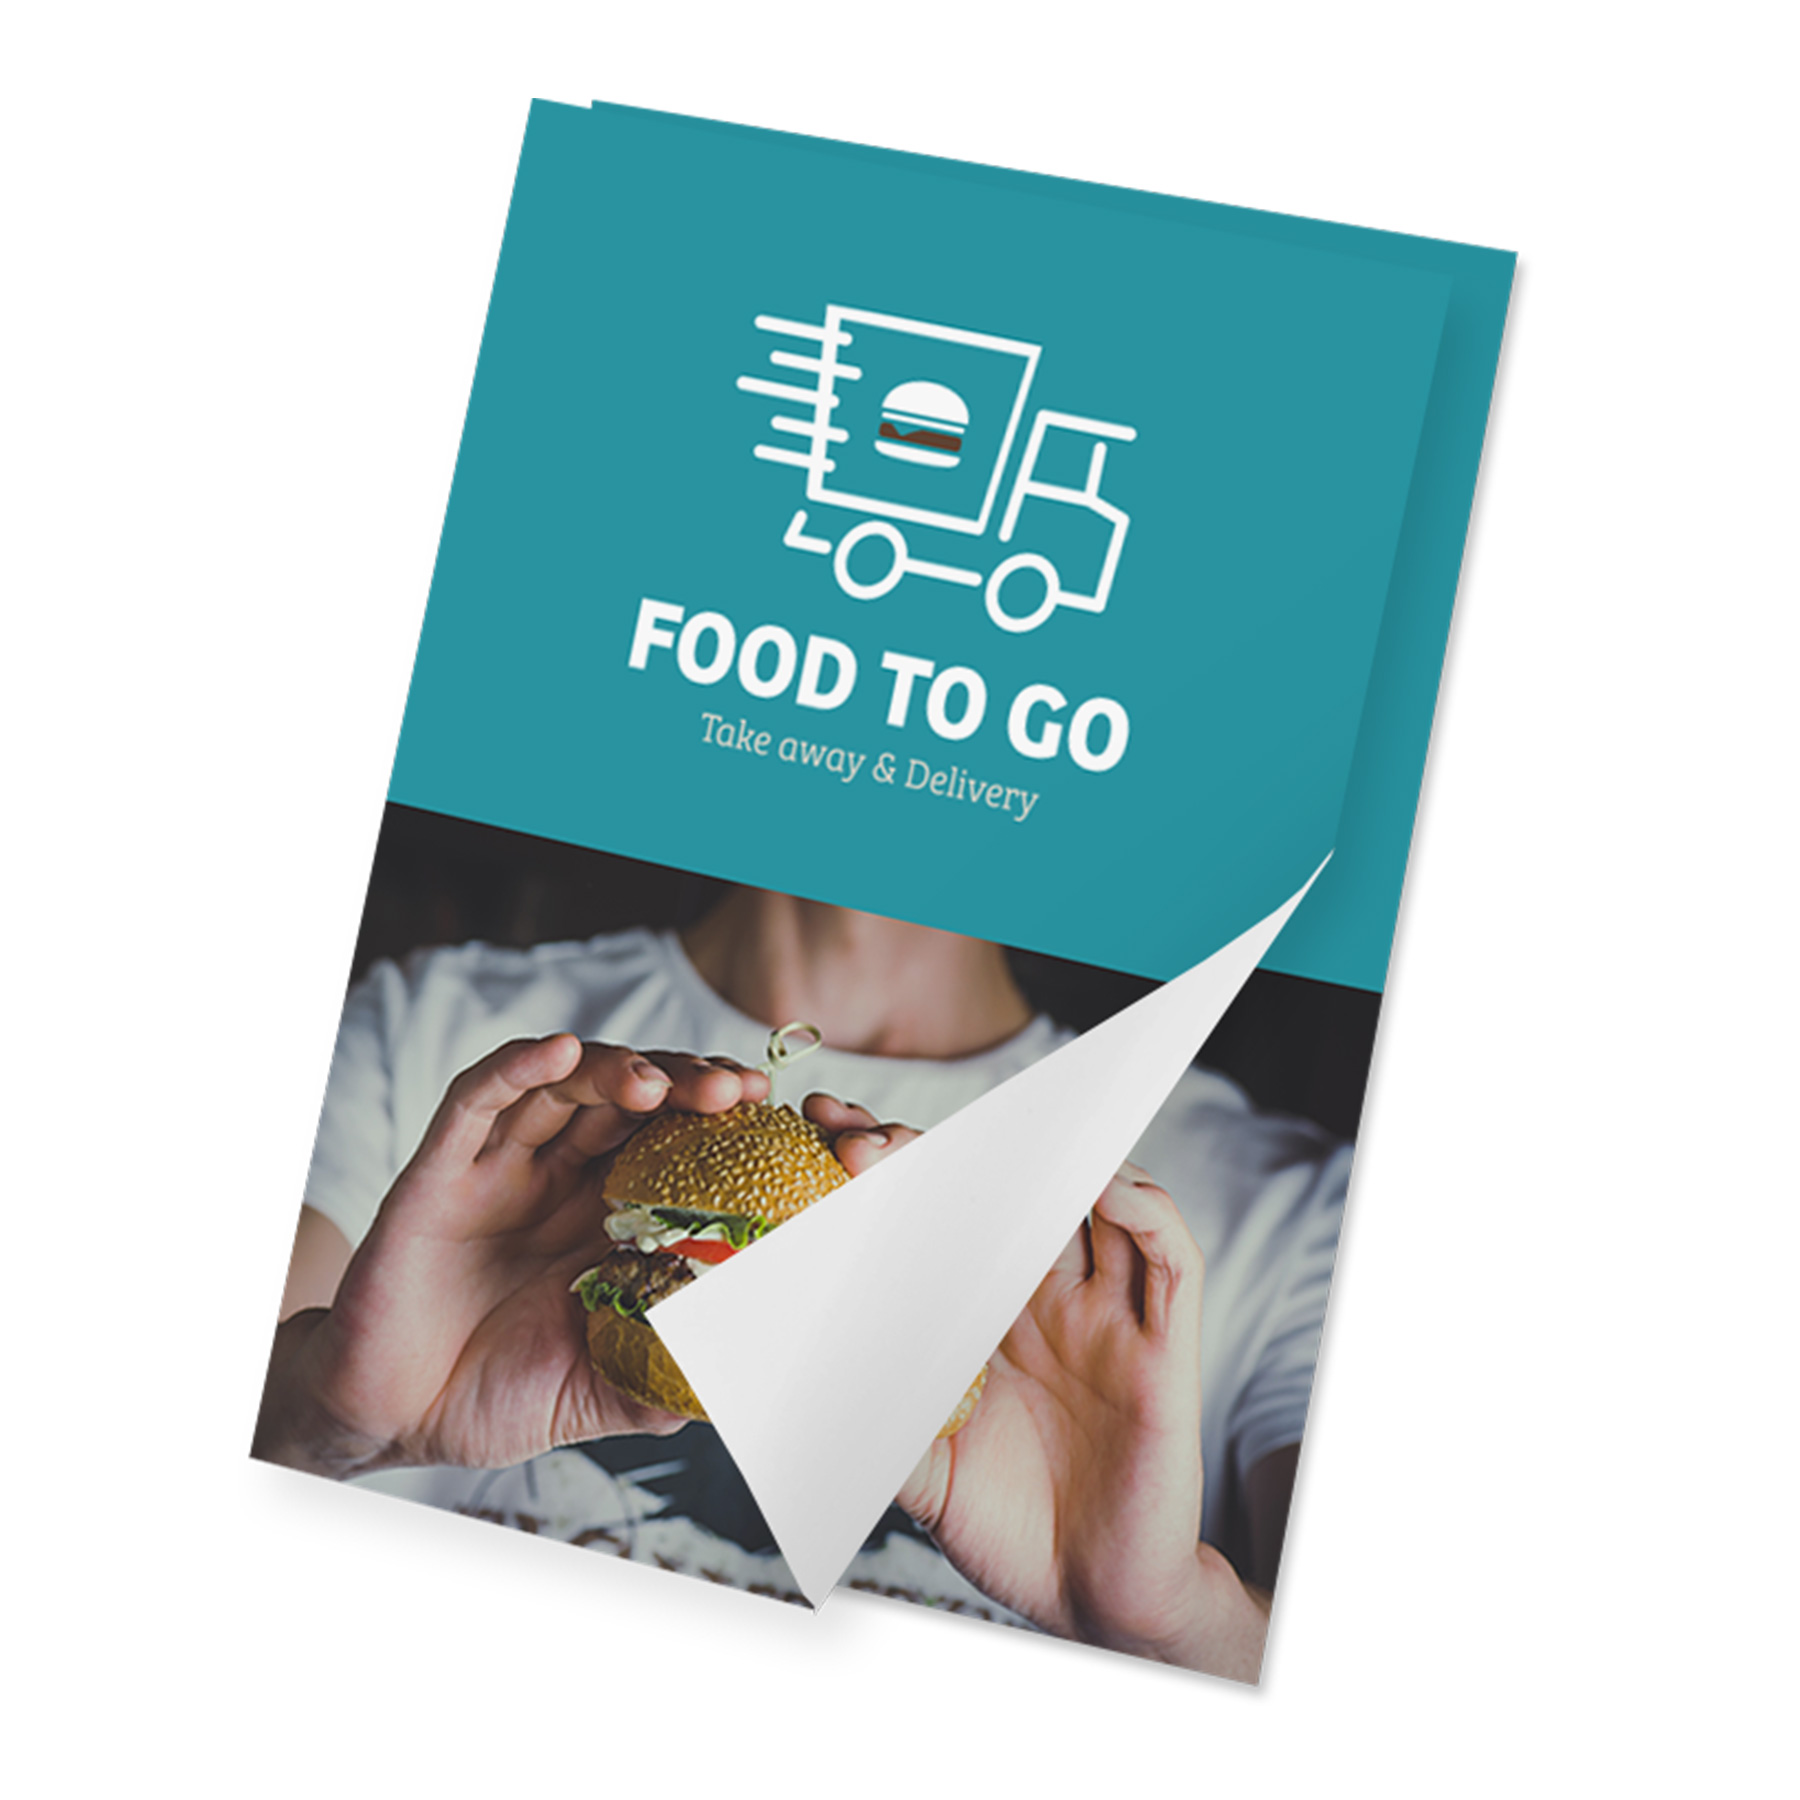 Food To Go posters